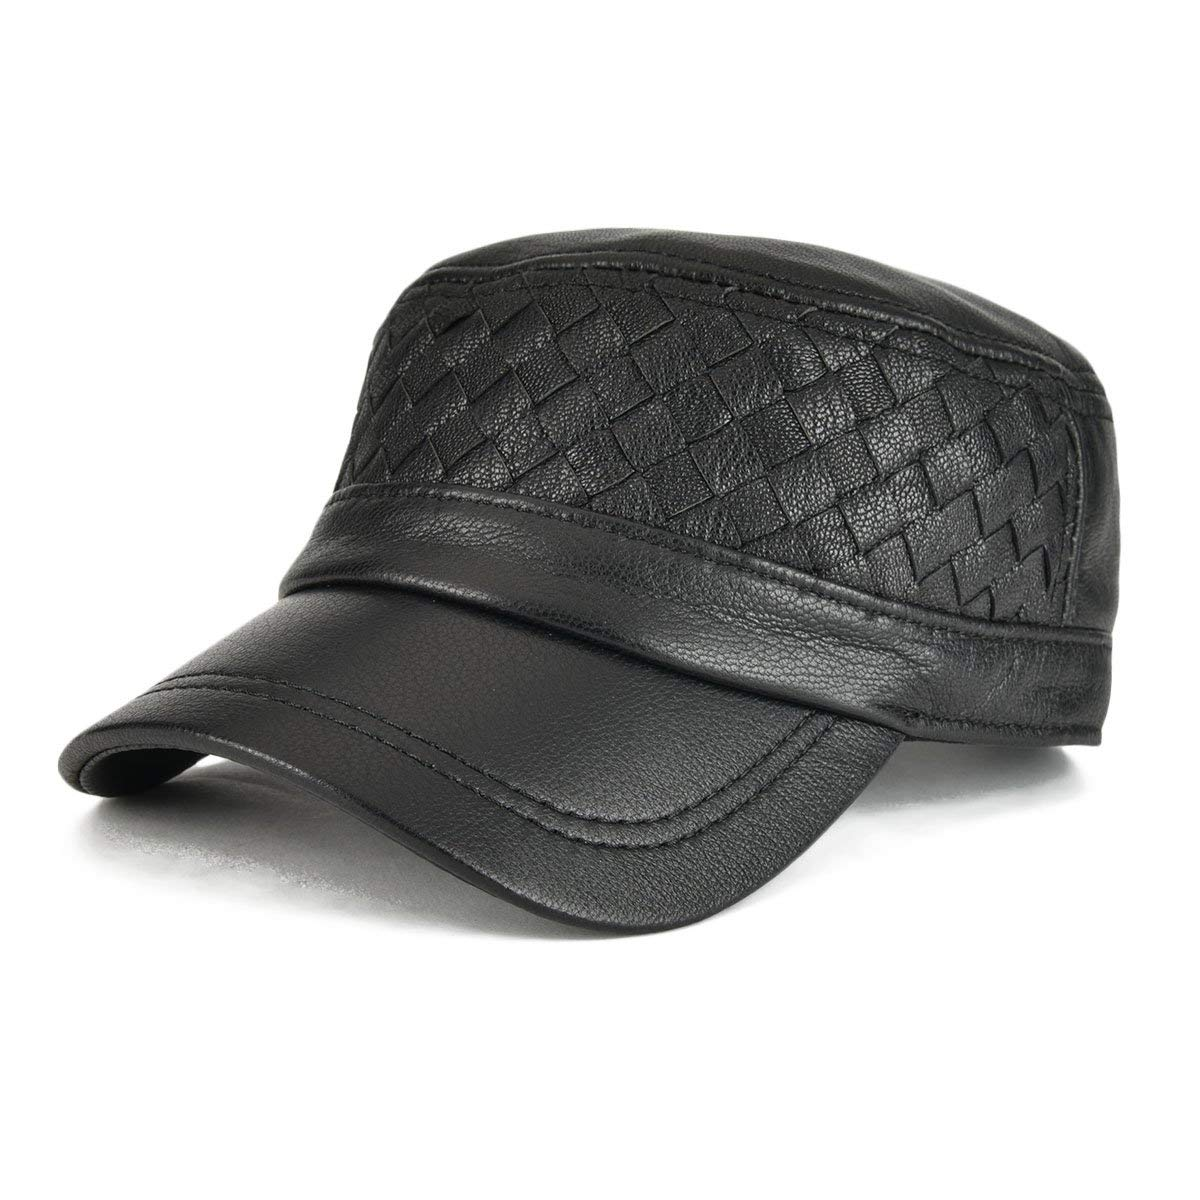 bb664c03463 Cheap Leather Cadet Cap, find Leather Cadet Cap deals on line at ...